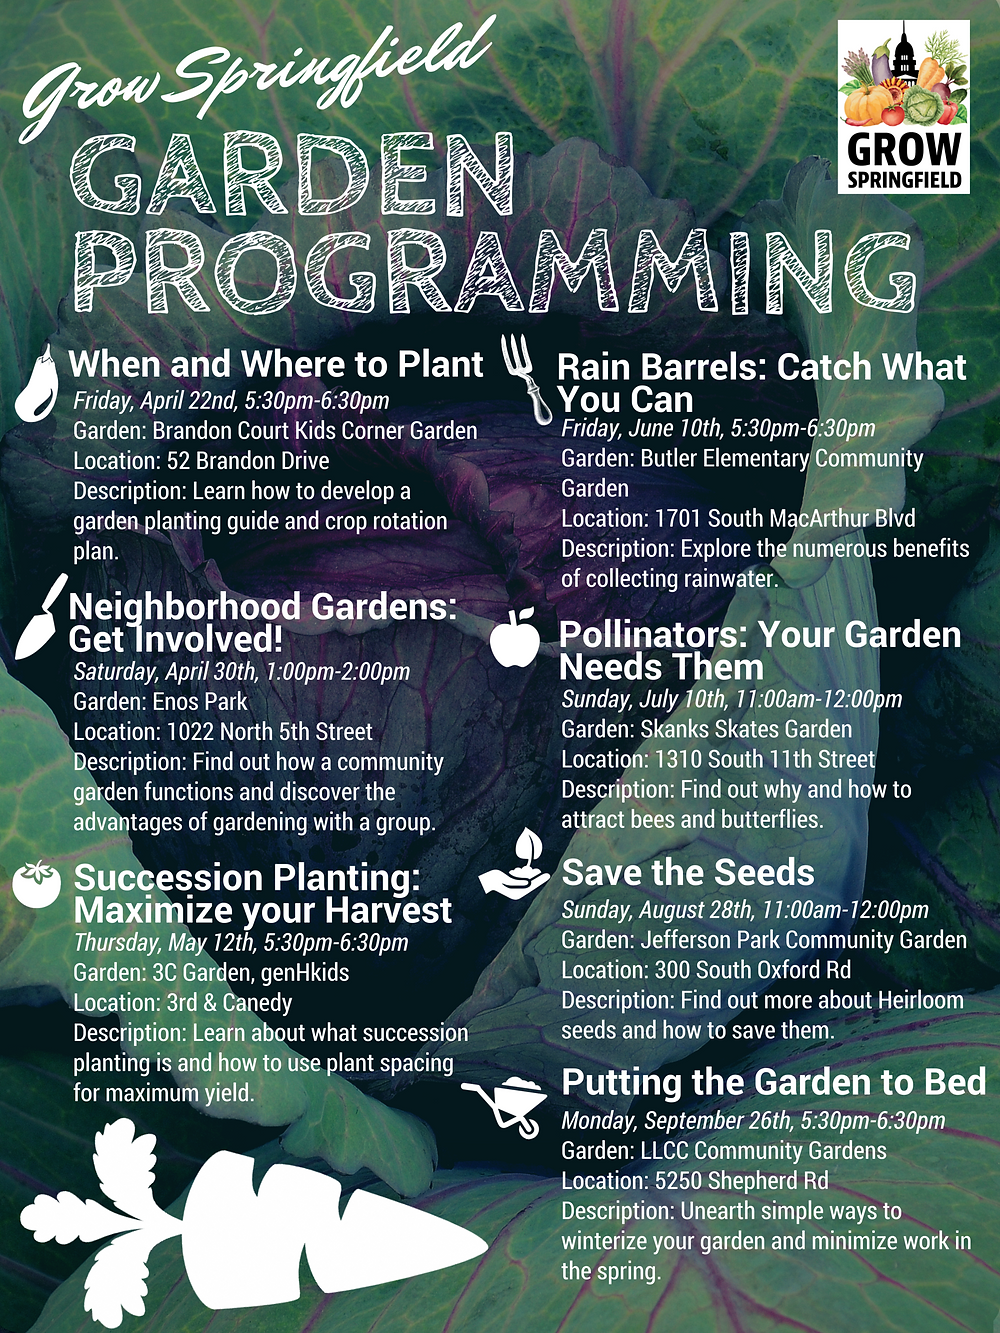 Whether you are looking to learn a thing or two about gardening or you just want participate in a community event, these sessions are sure to engage you in some way!  Each garden program is free and open to the public.